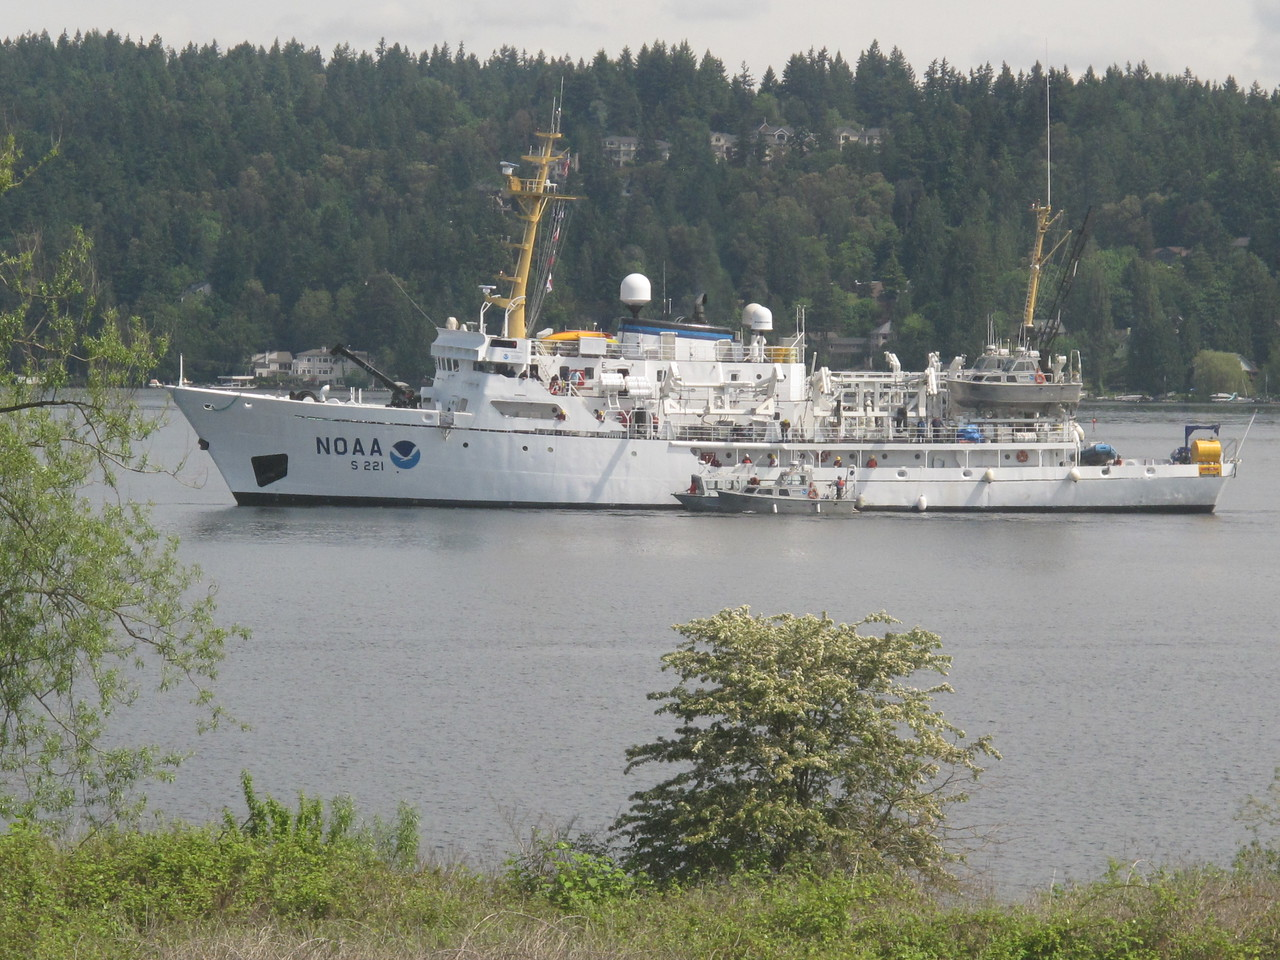 Thursday, June 9, 2011. One of NOAA's research vessels with it's work boats passes on Lake Washington in front of my office.